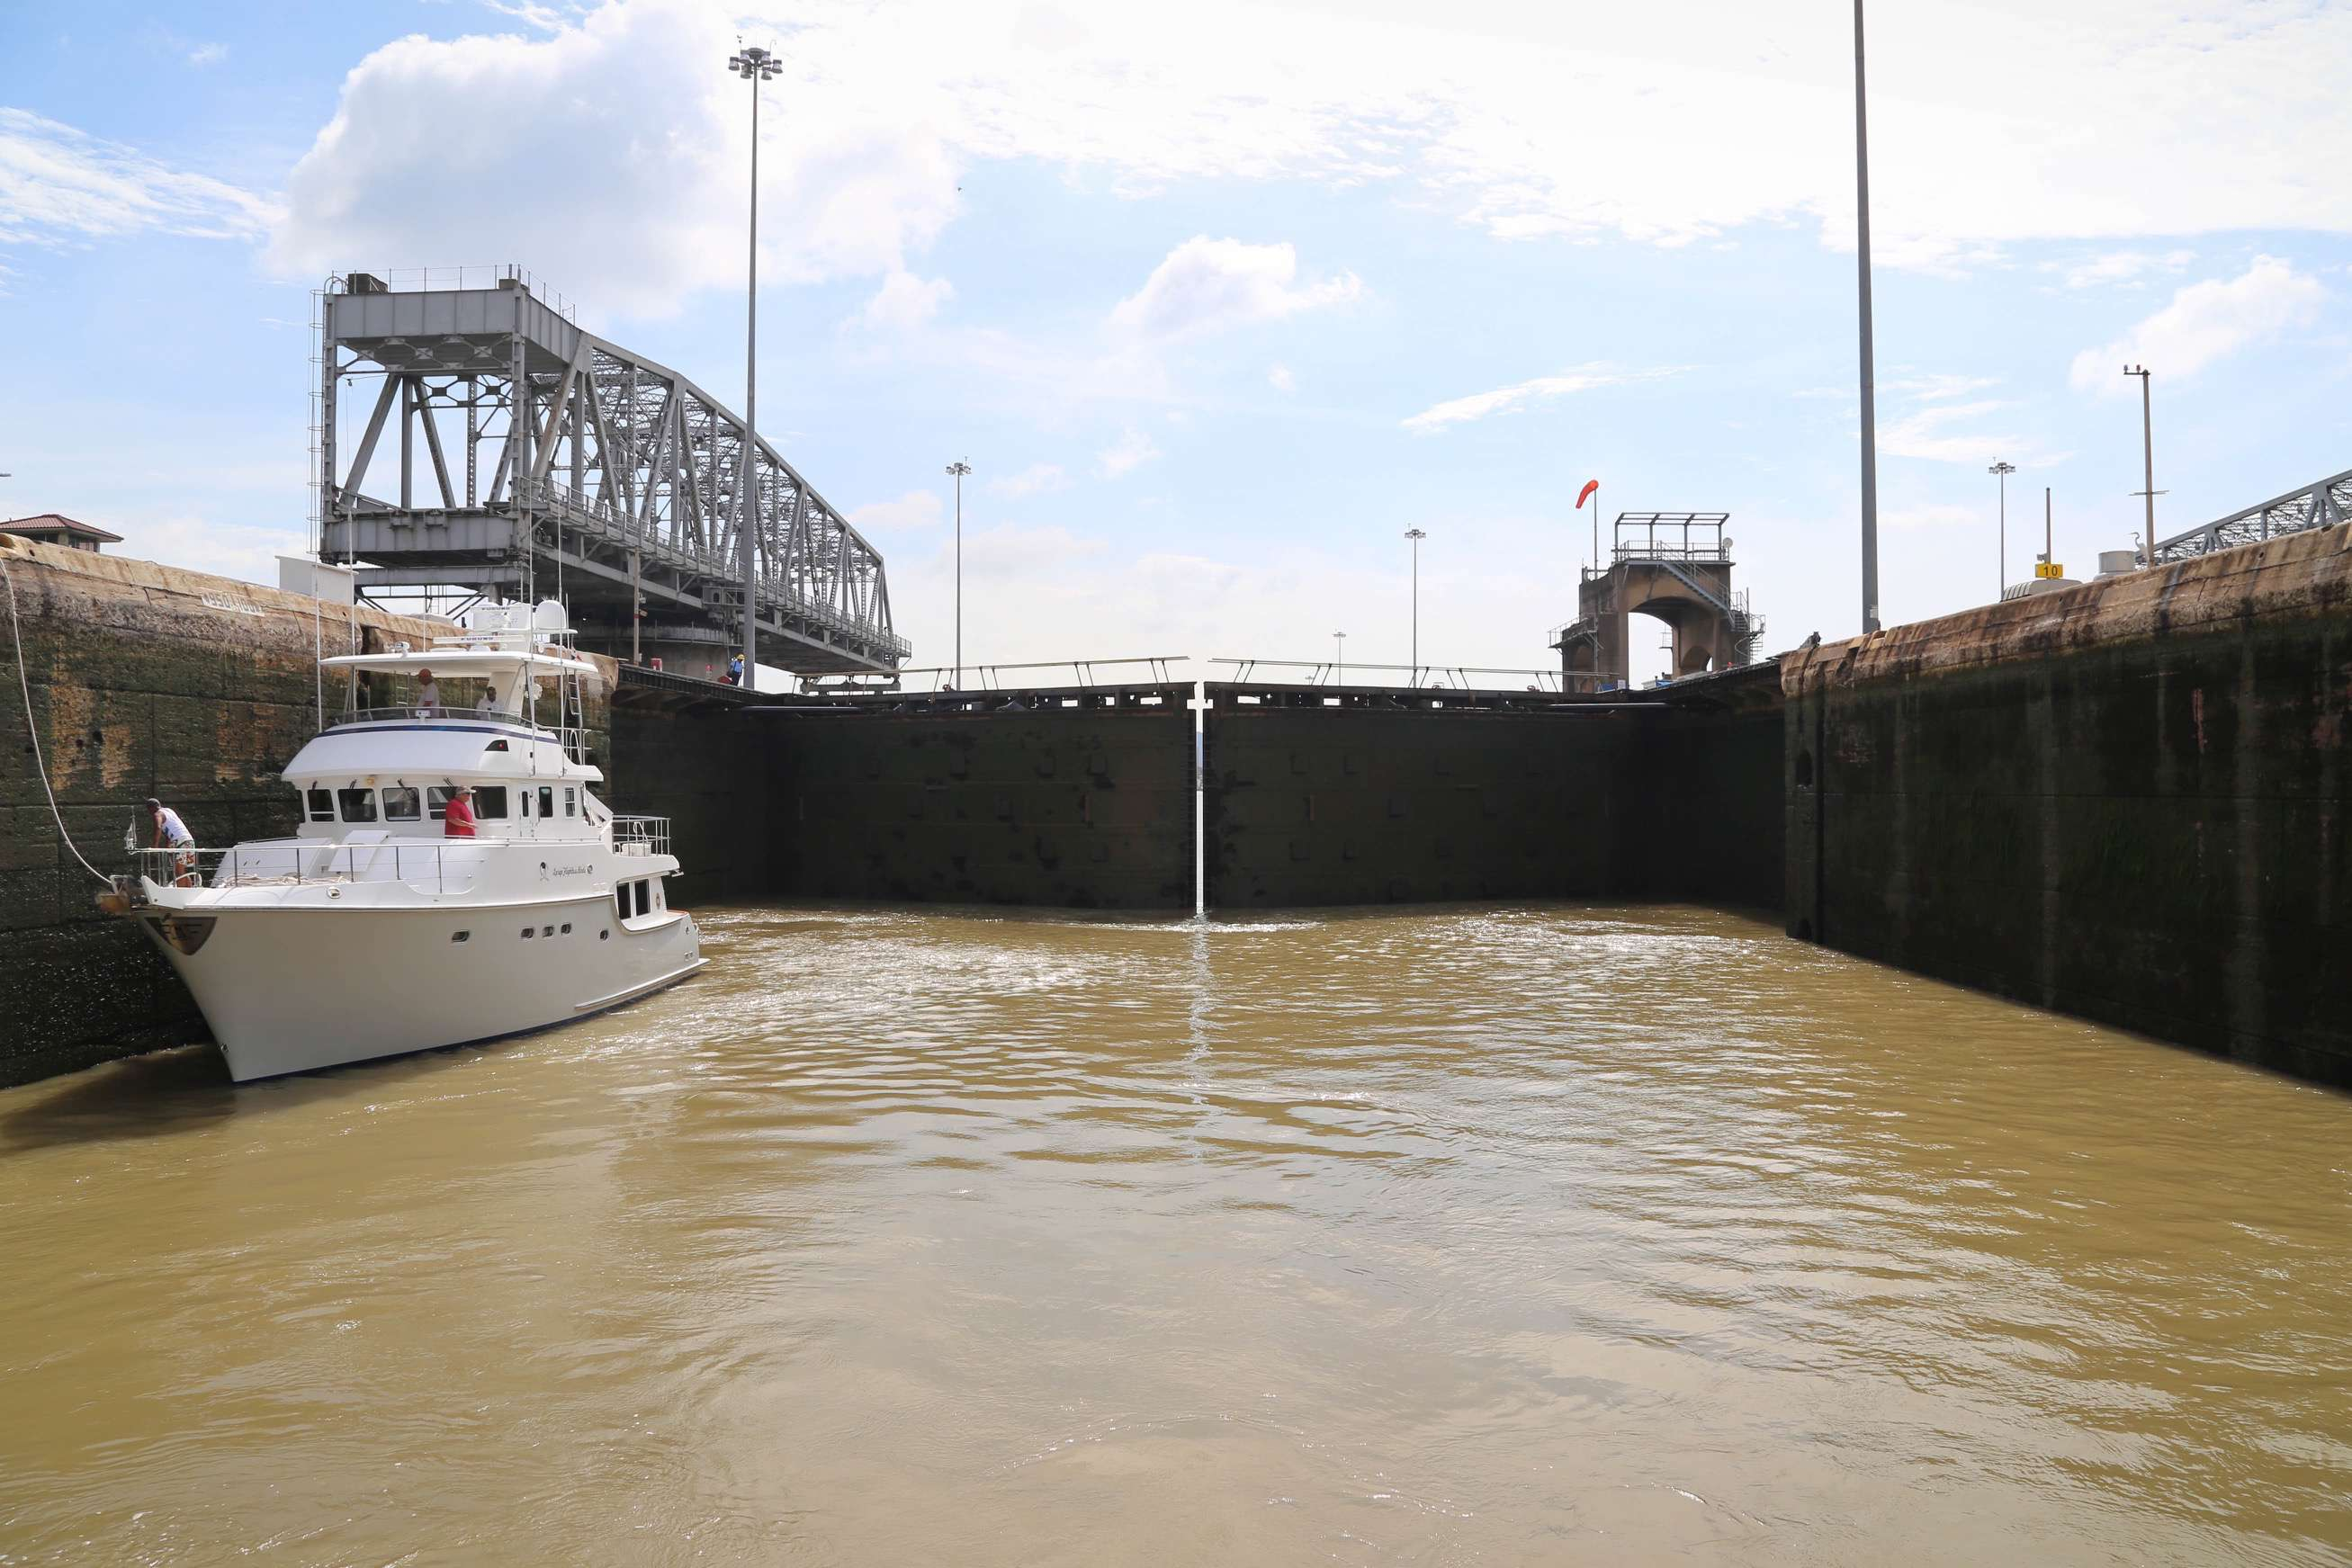 The gates of the locks are designed so that when they close, water pressure helps ensure a tight seal.